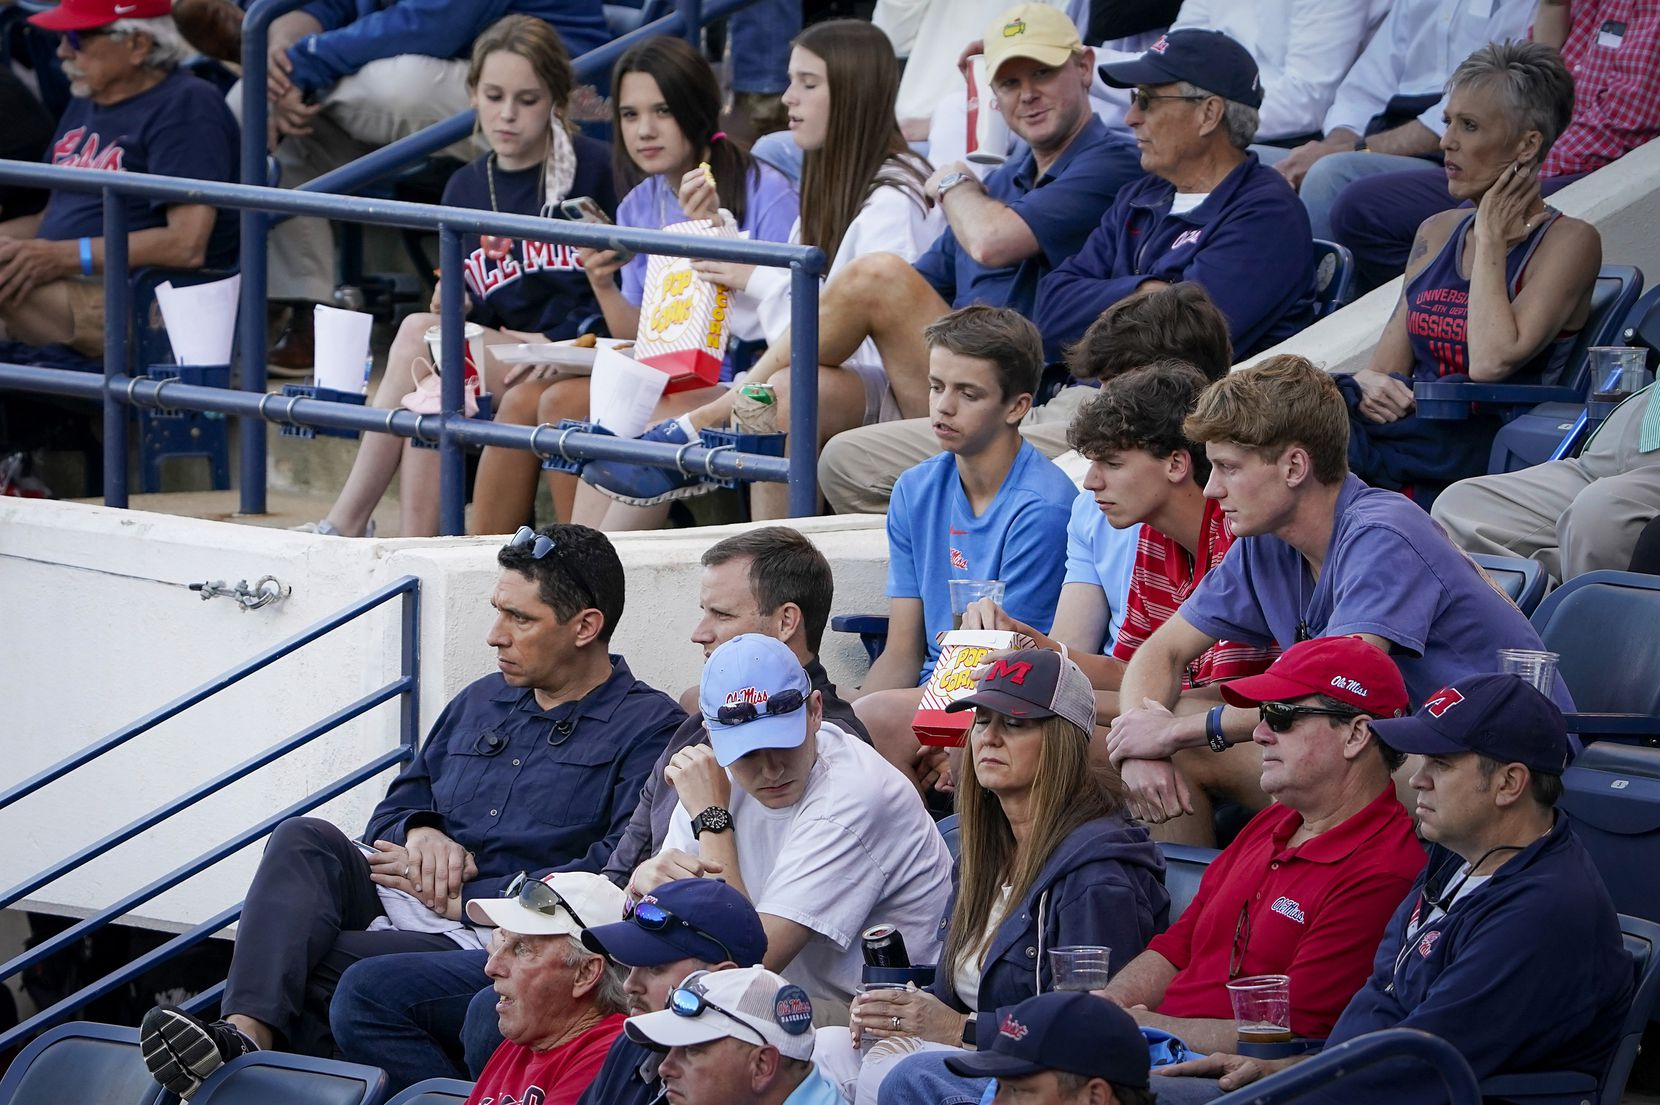 Texas Ranges president, baseball operations, Jon Daniels (bottom left) watches an NCAA baseball game between Mississippi and Vanderbilt at Swayze Field on Friday, May 14, 2021, in Oxford, Miss.